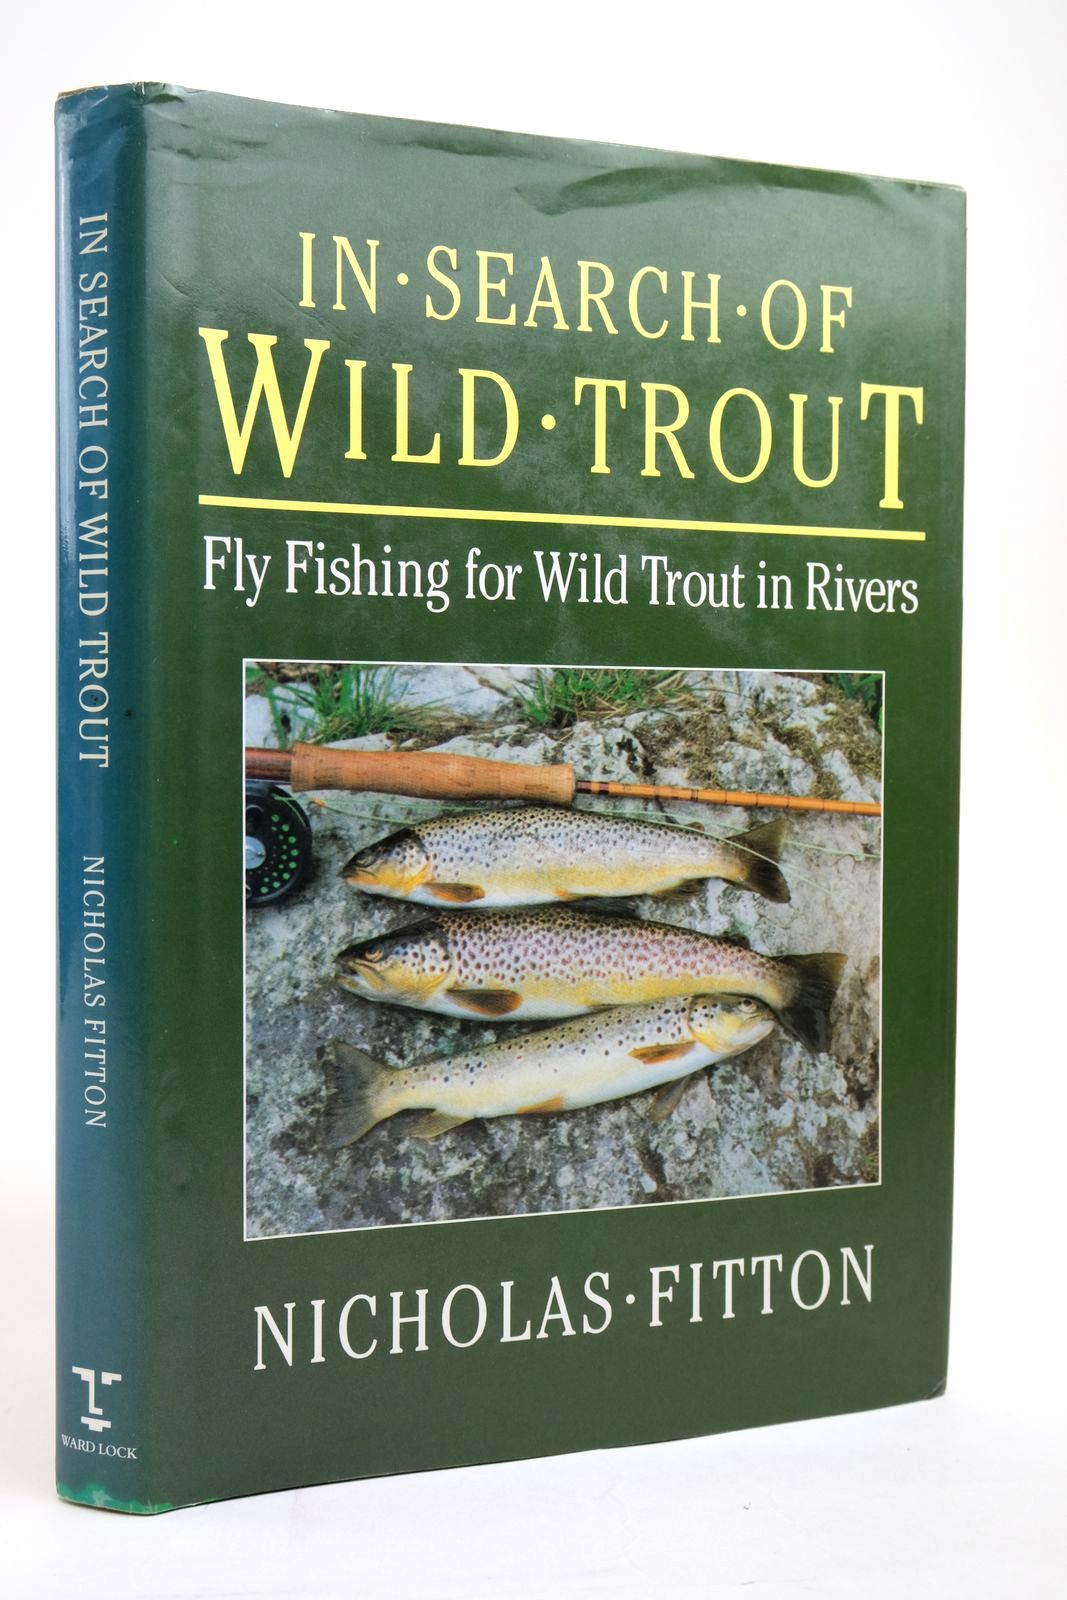 Photo of IN SEARCH OF WILD TROUT written by Fitton, Nicholas published by Ward Lock (STOCK CODE: 2135154)  for sale by Stella & Rose's Books